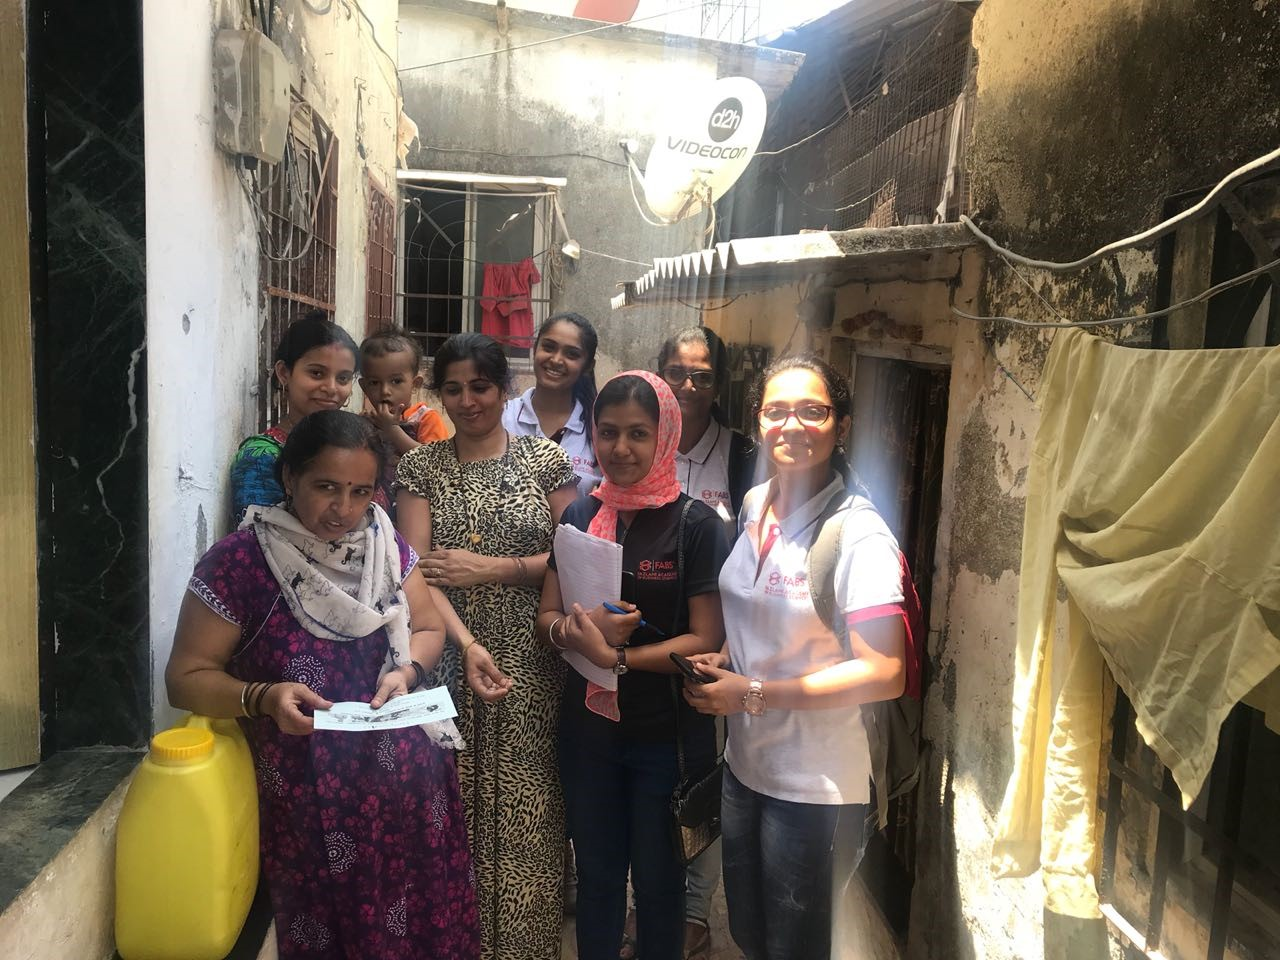 Helper4U team in Mumbai slum